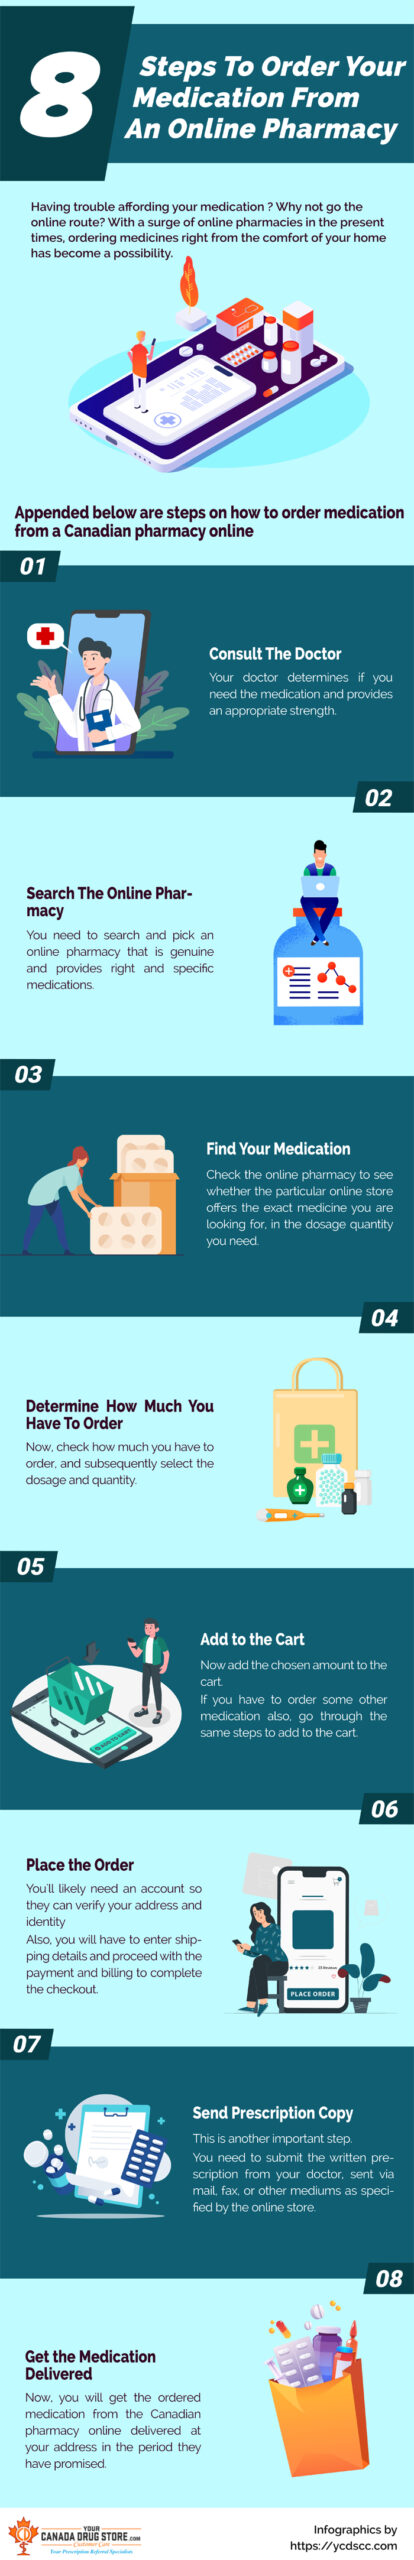 8 Steps To Order Your Medication From An Online Pharmacy Infographic